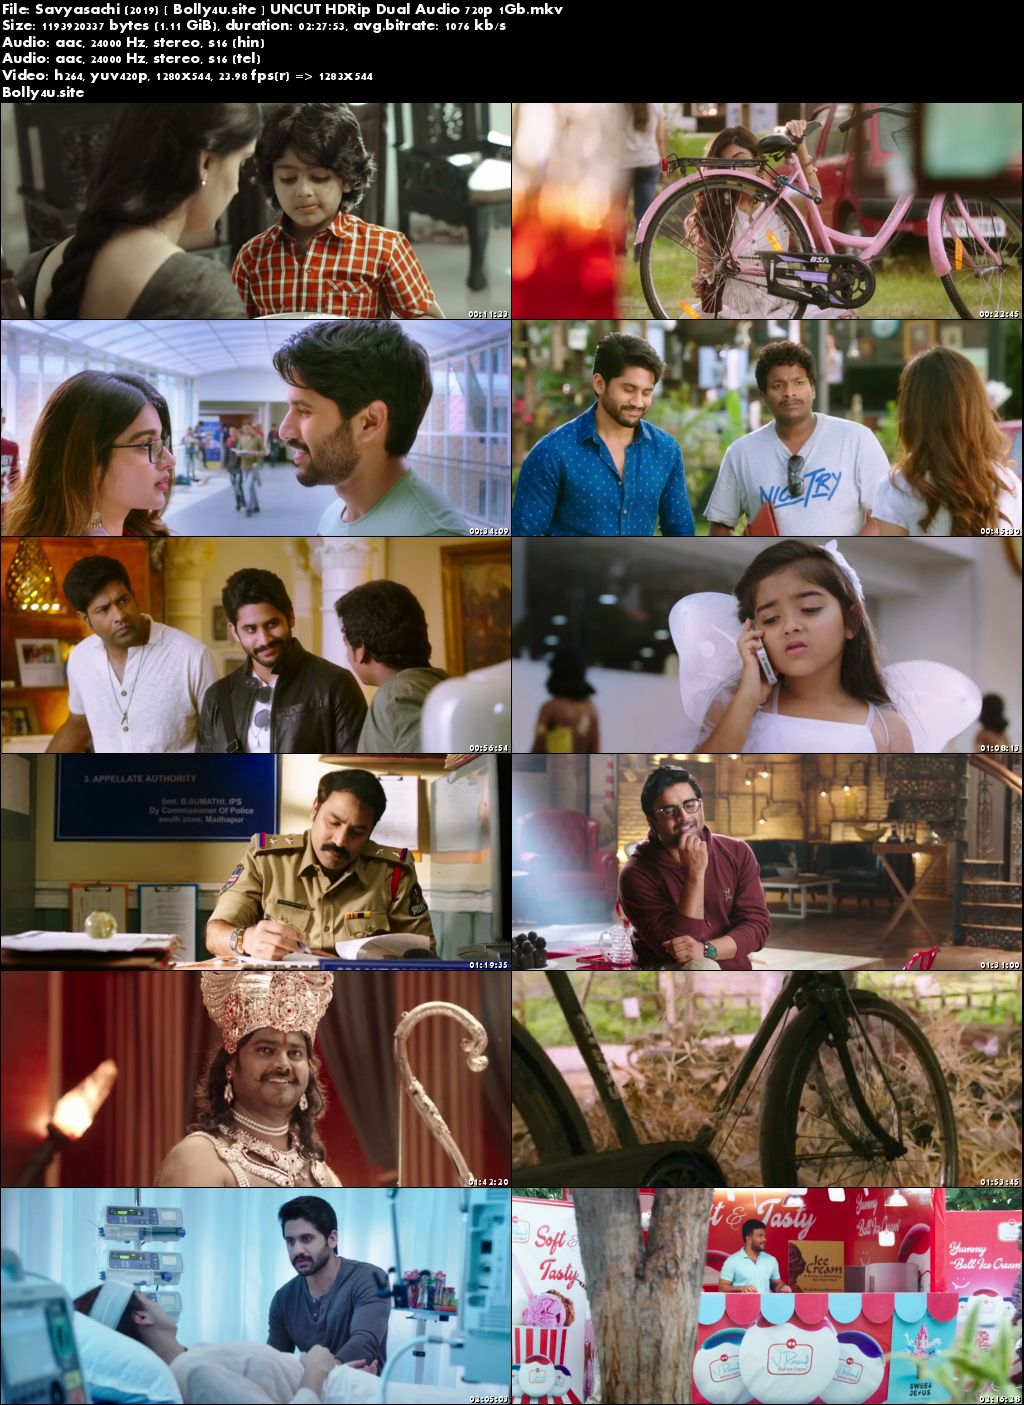 Savyasachi 2019 HDRip 1GB UNCUT Hindi Dual Audio 720p Download